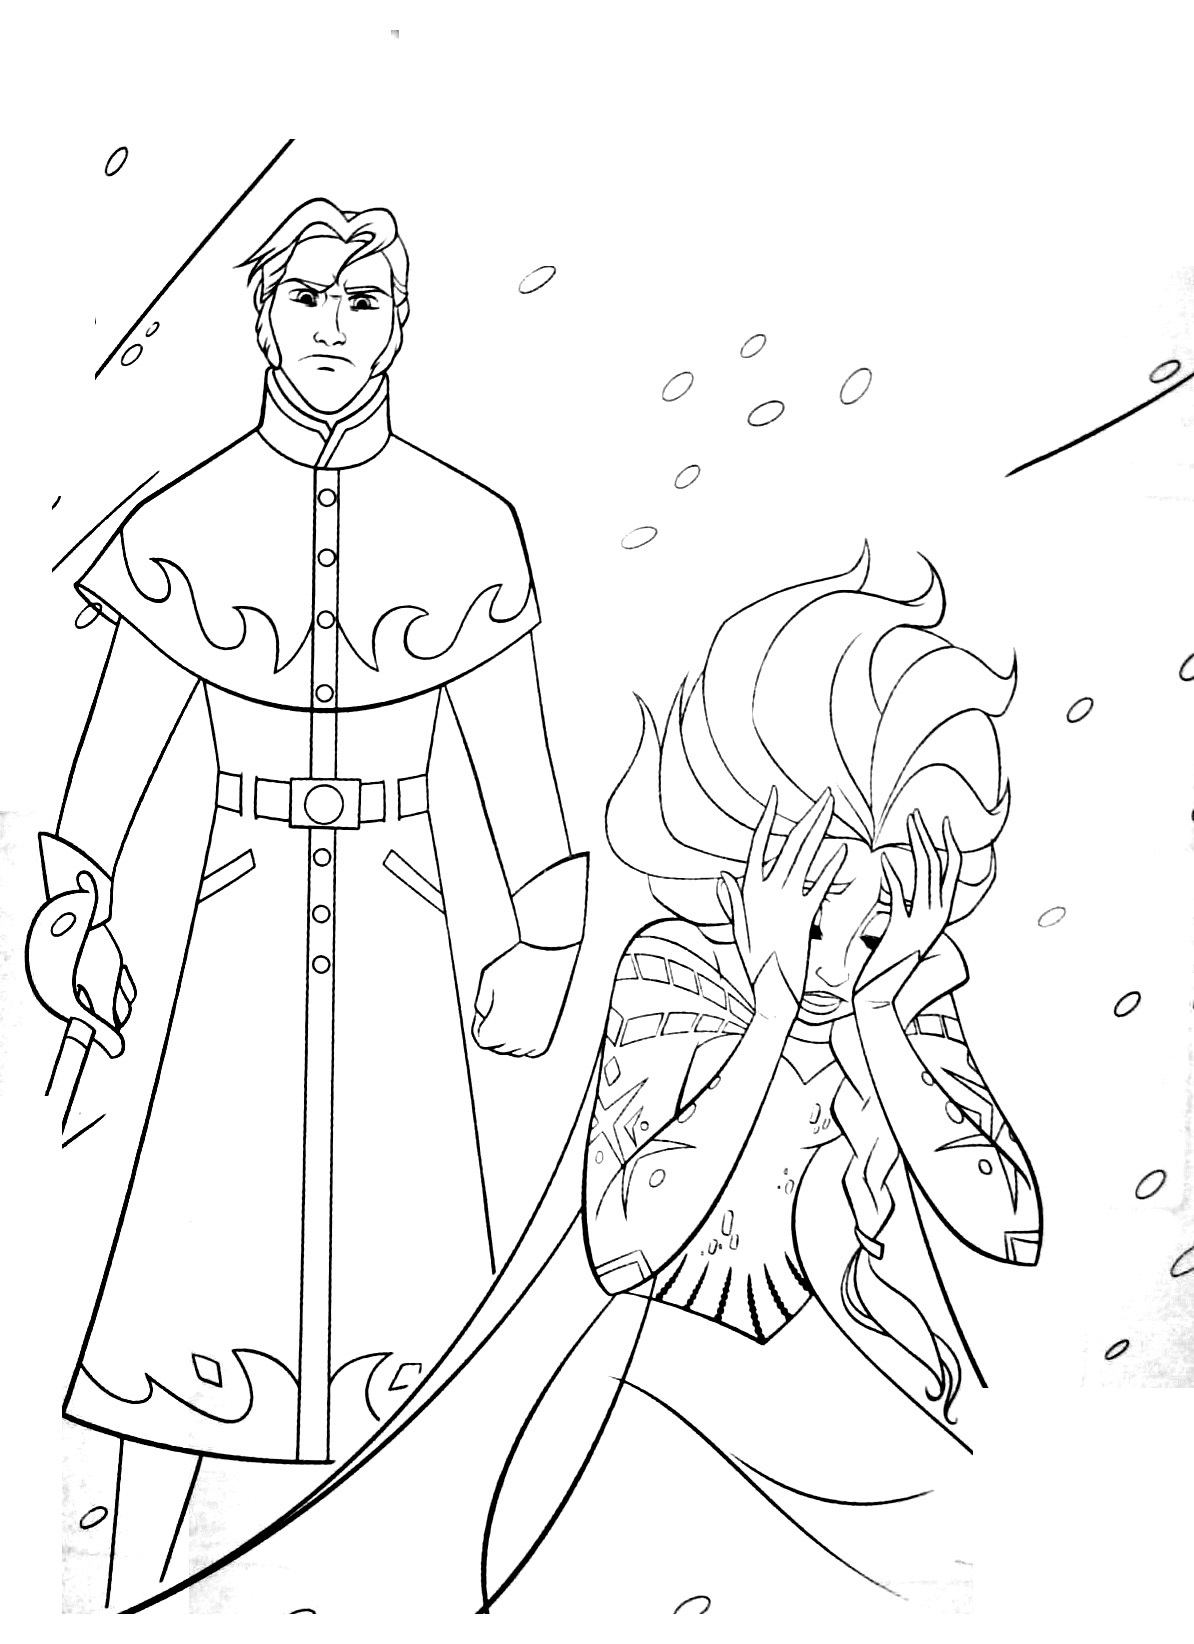 Free Frozen coloring page to print and color : The bad Hans